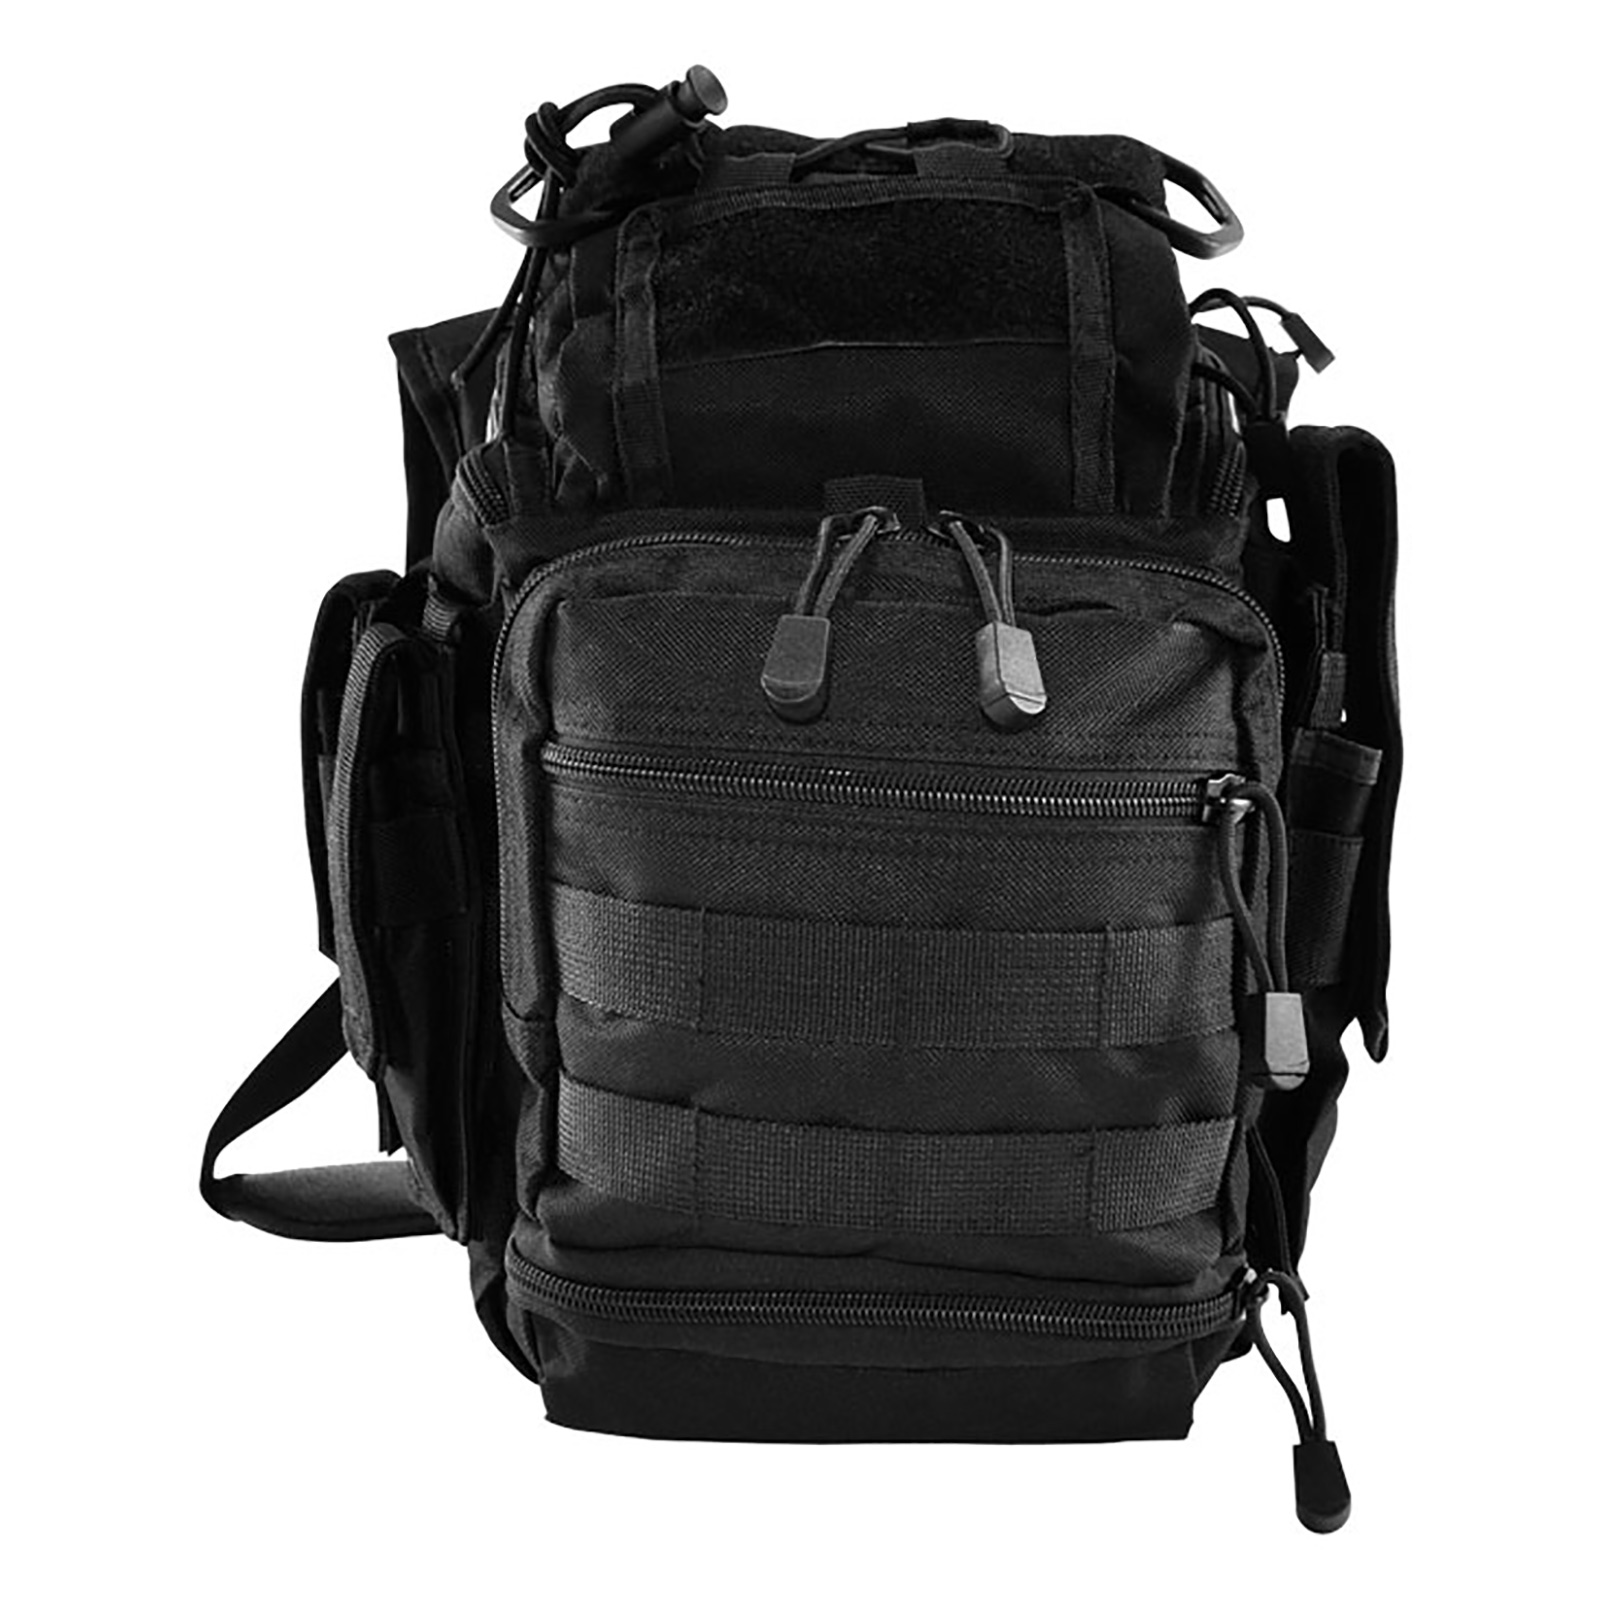 nc-star-bag-first-responders-black-w-7-compartments